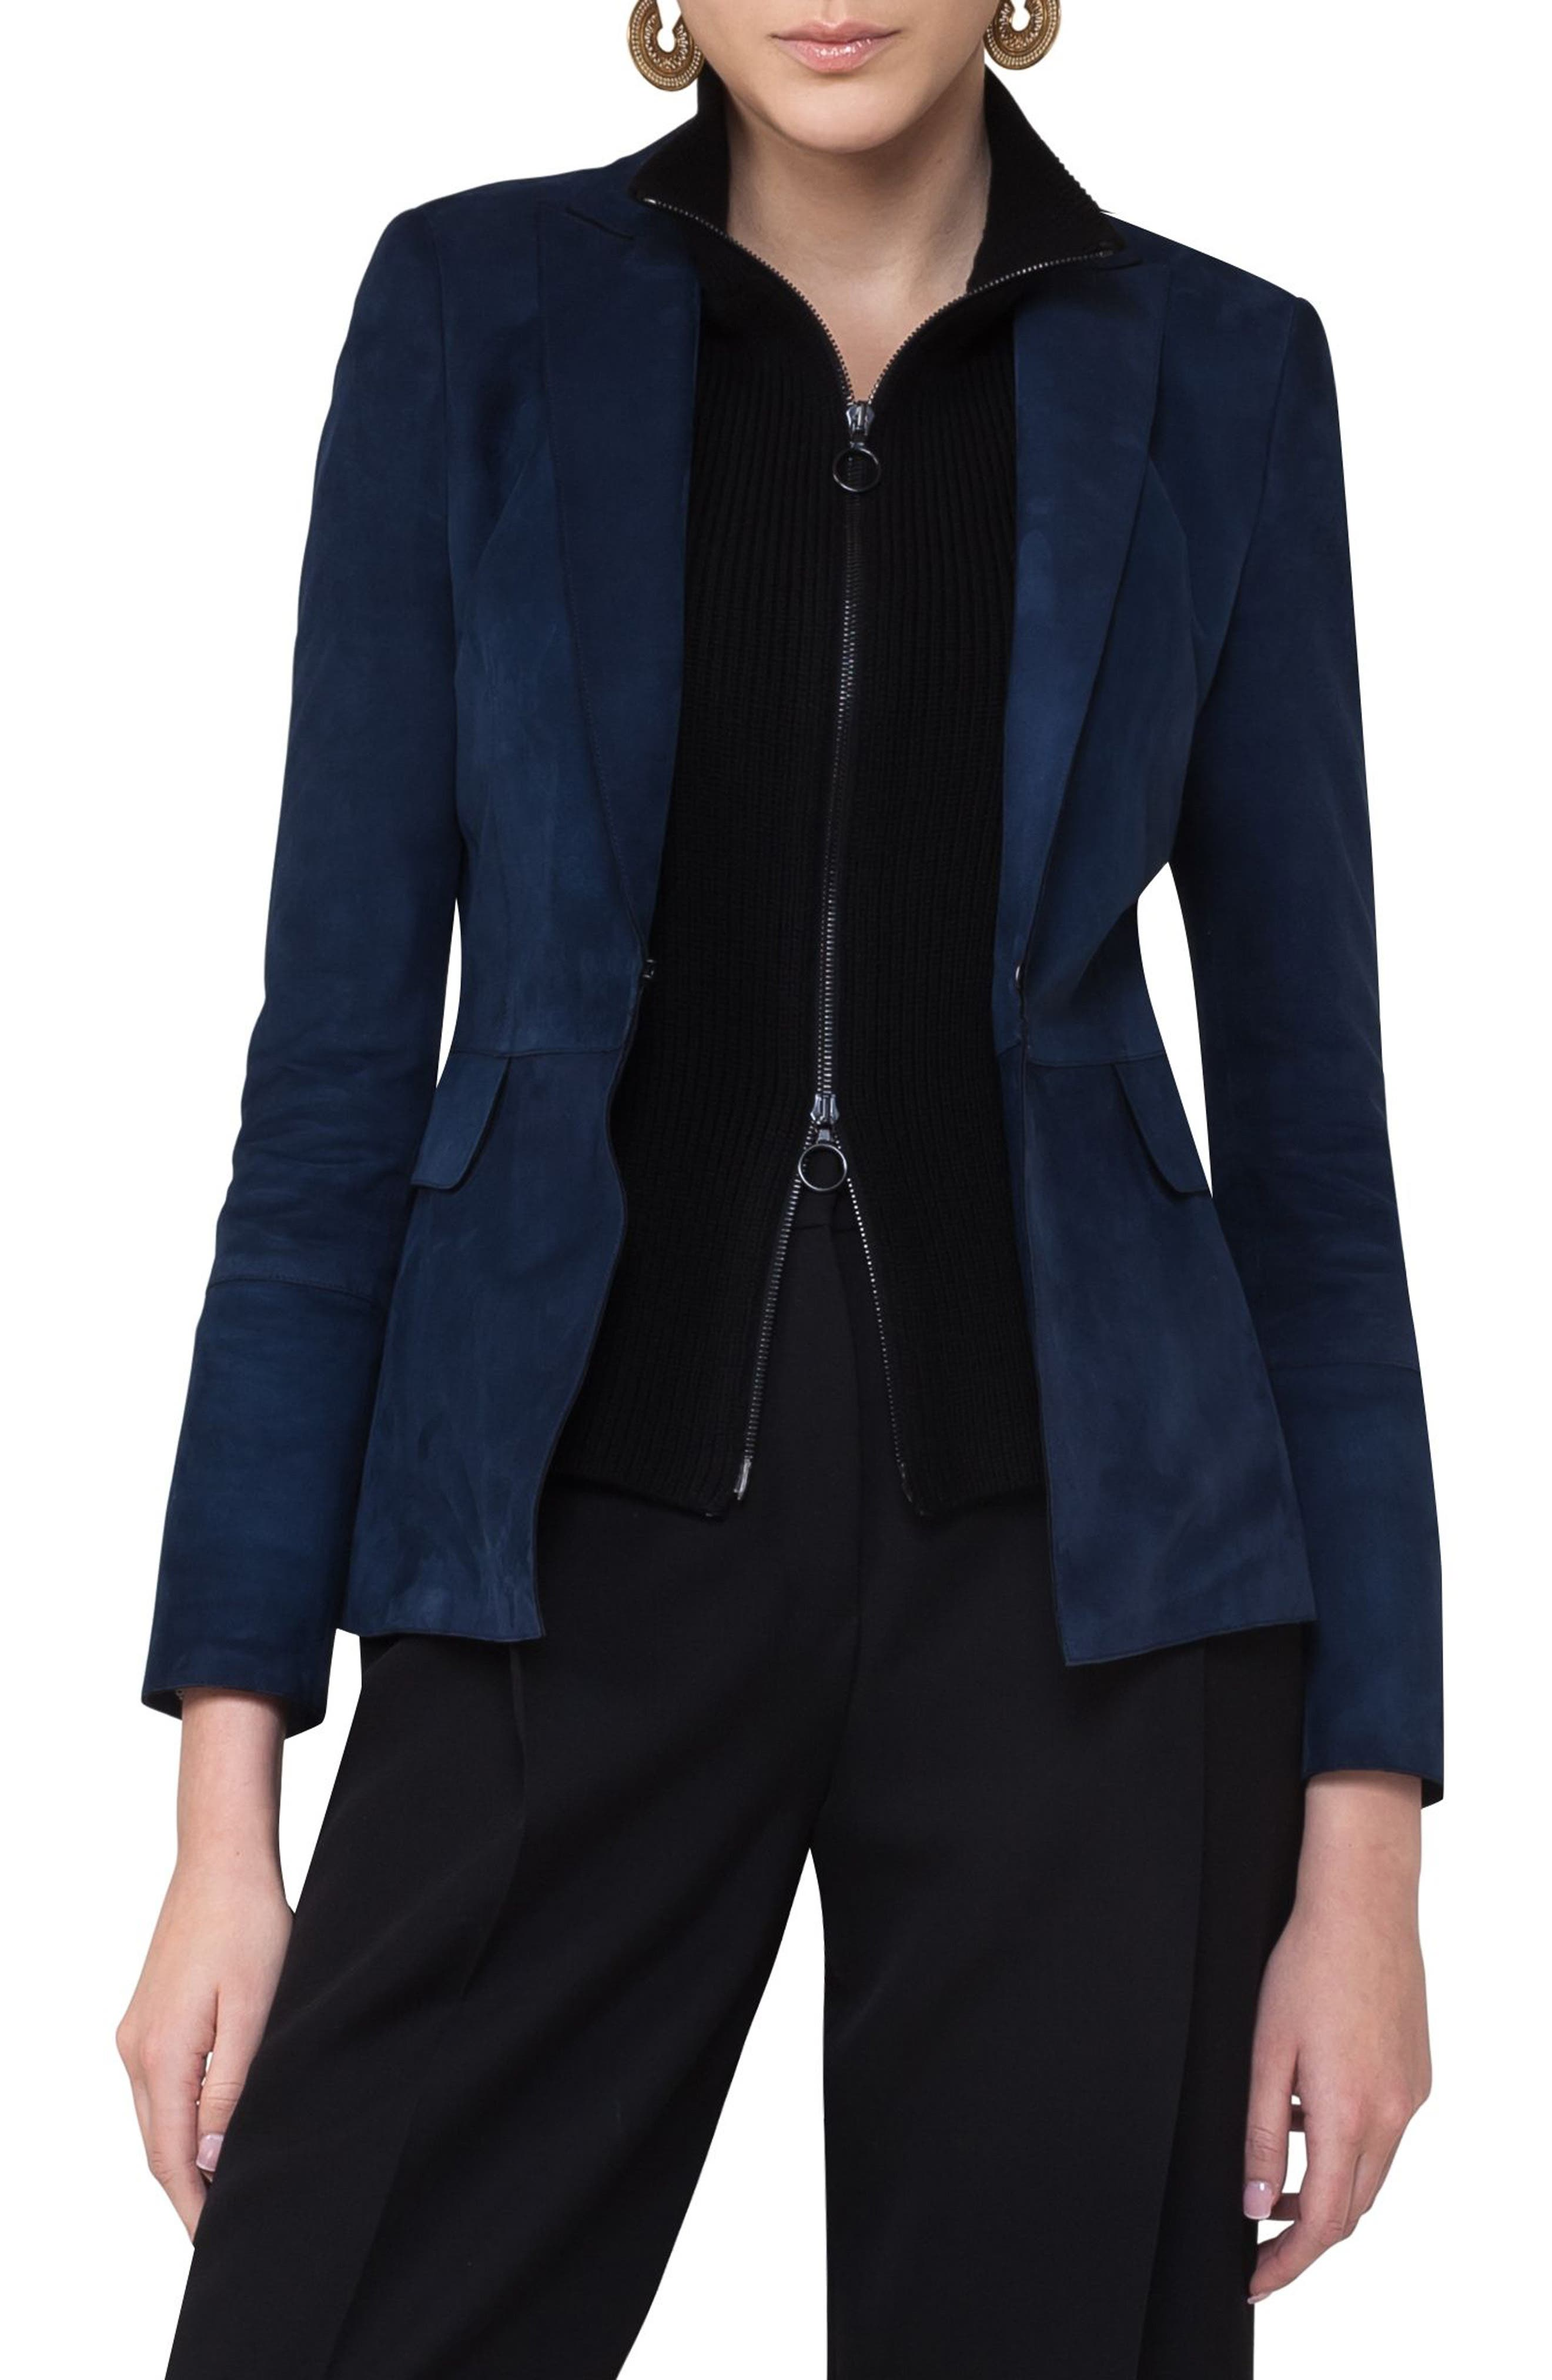 Suede Blazer with Removable Knit Insert,                             Main thumbnail 1, color,                             400